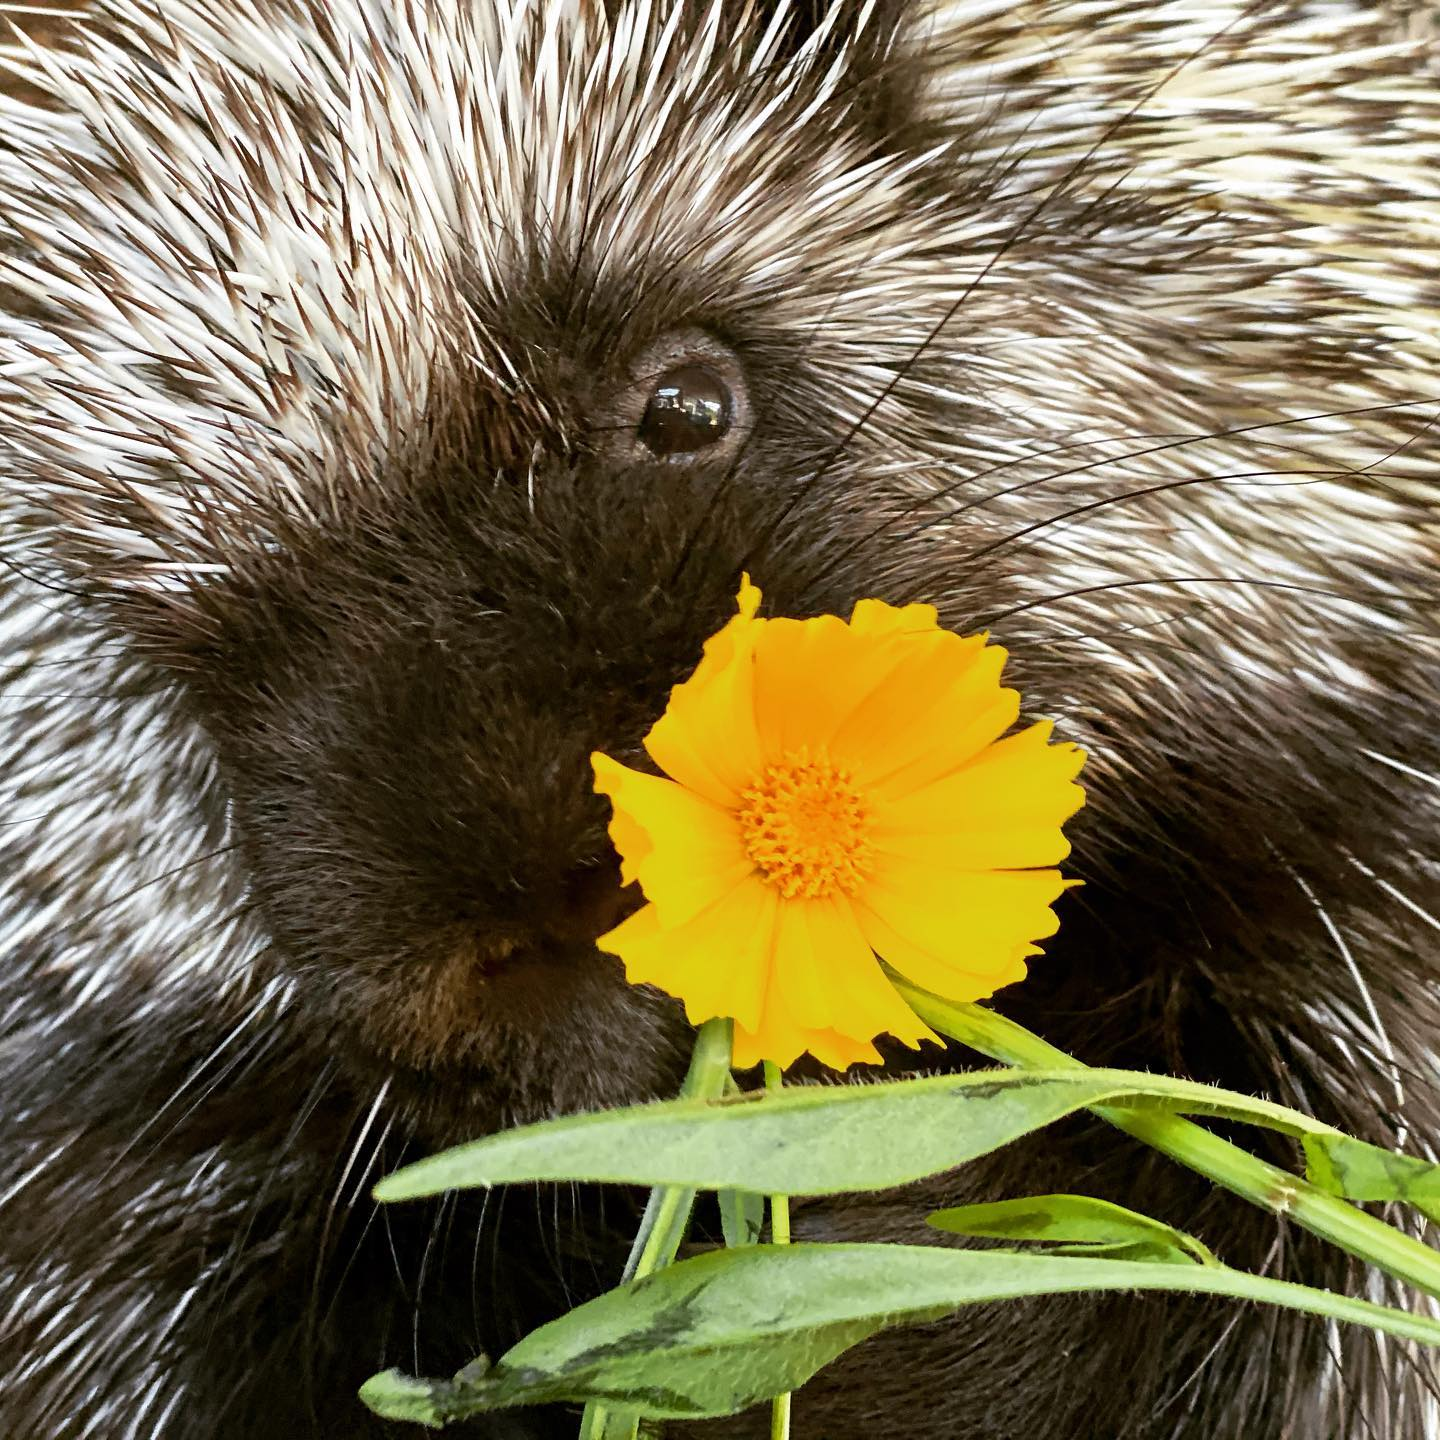 Extreme close-up of Stickley the porcupine eating a flowering plant. Image courtesy Leah Valerio.